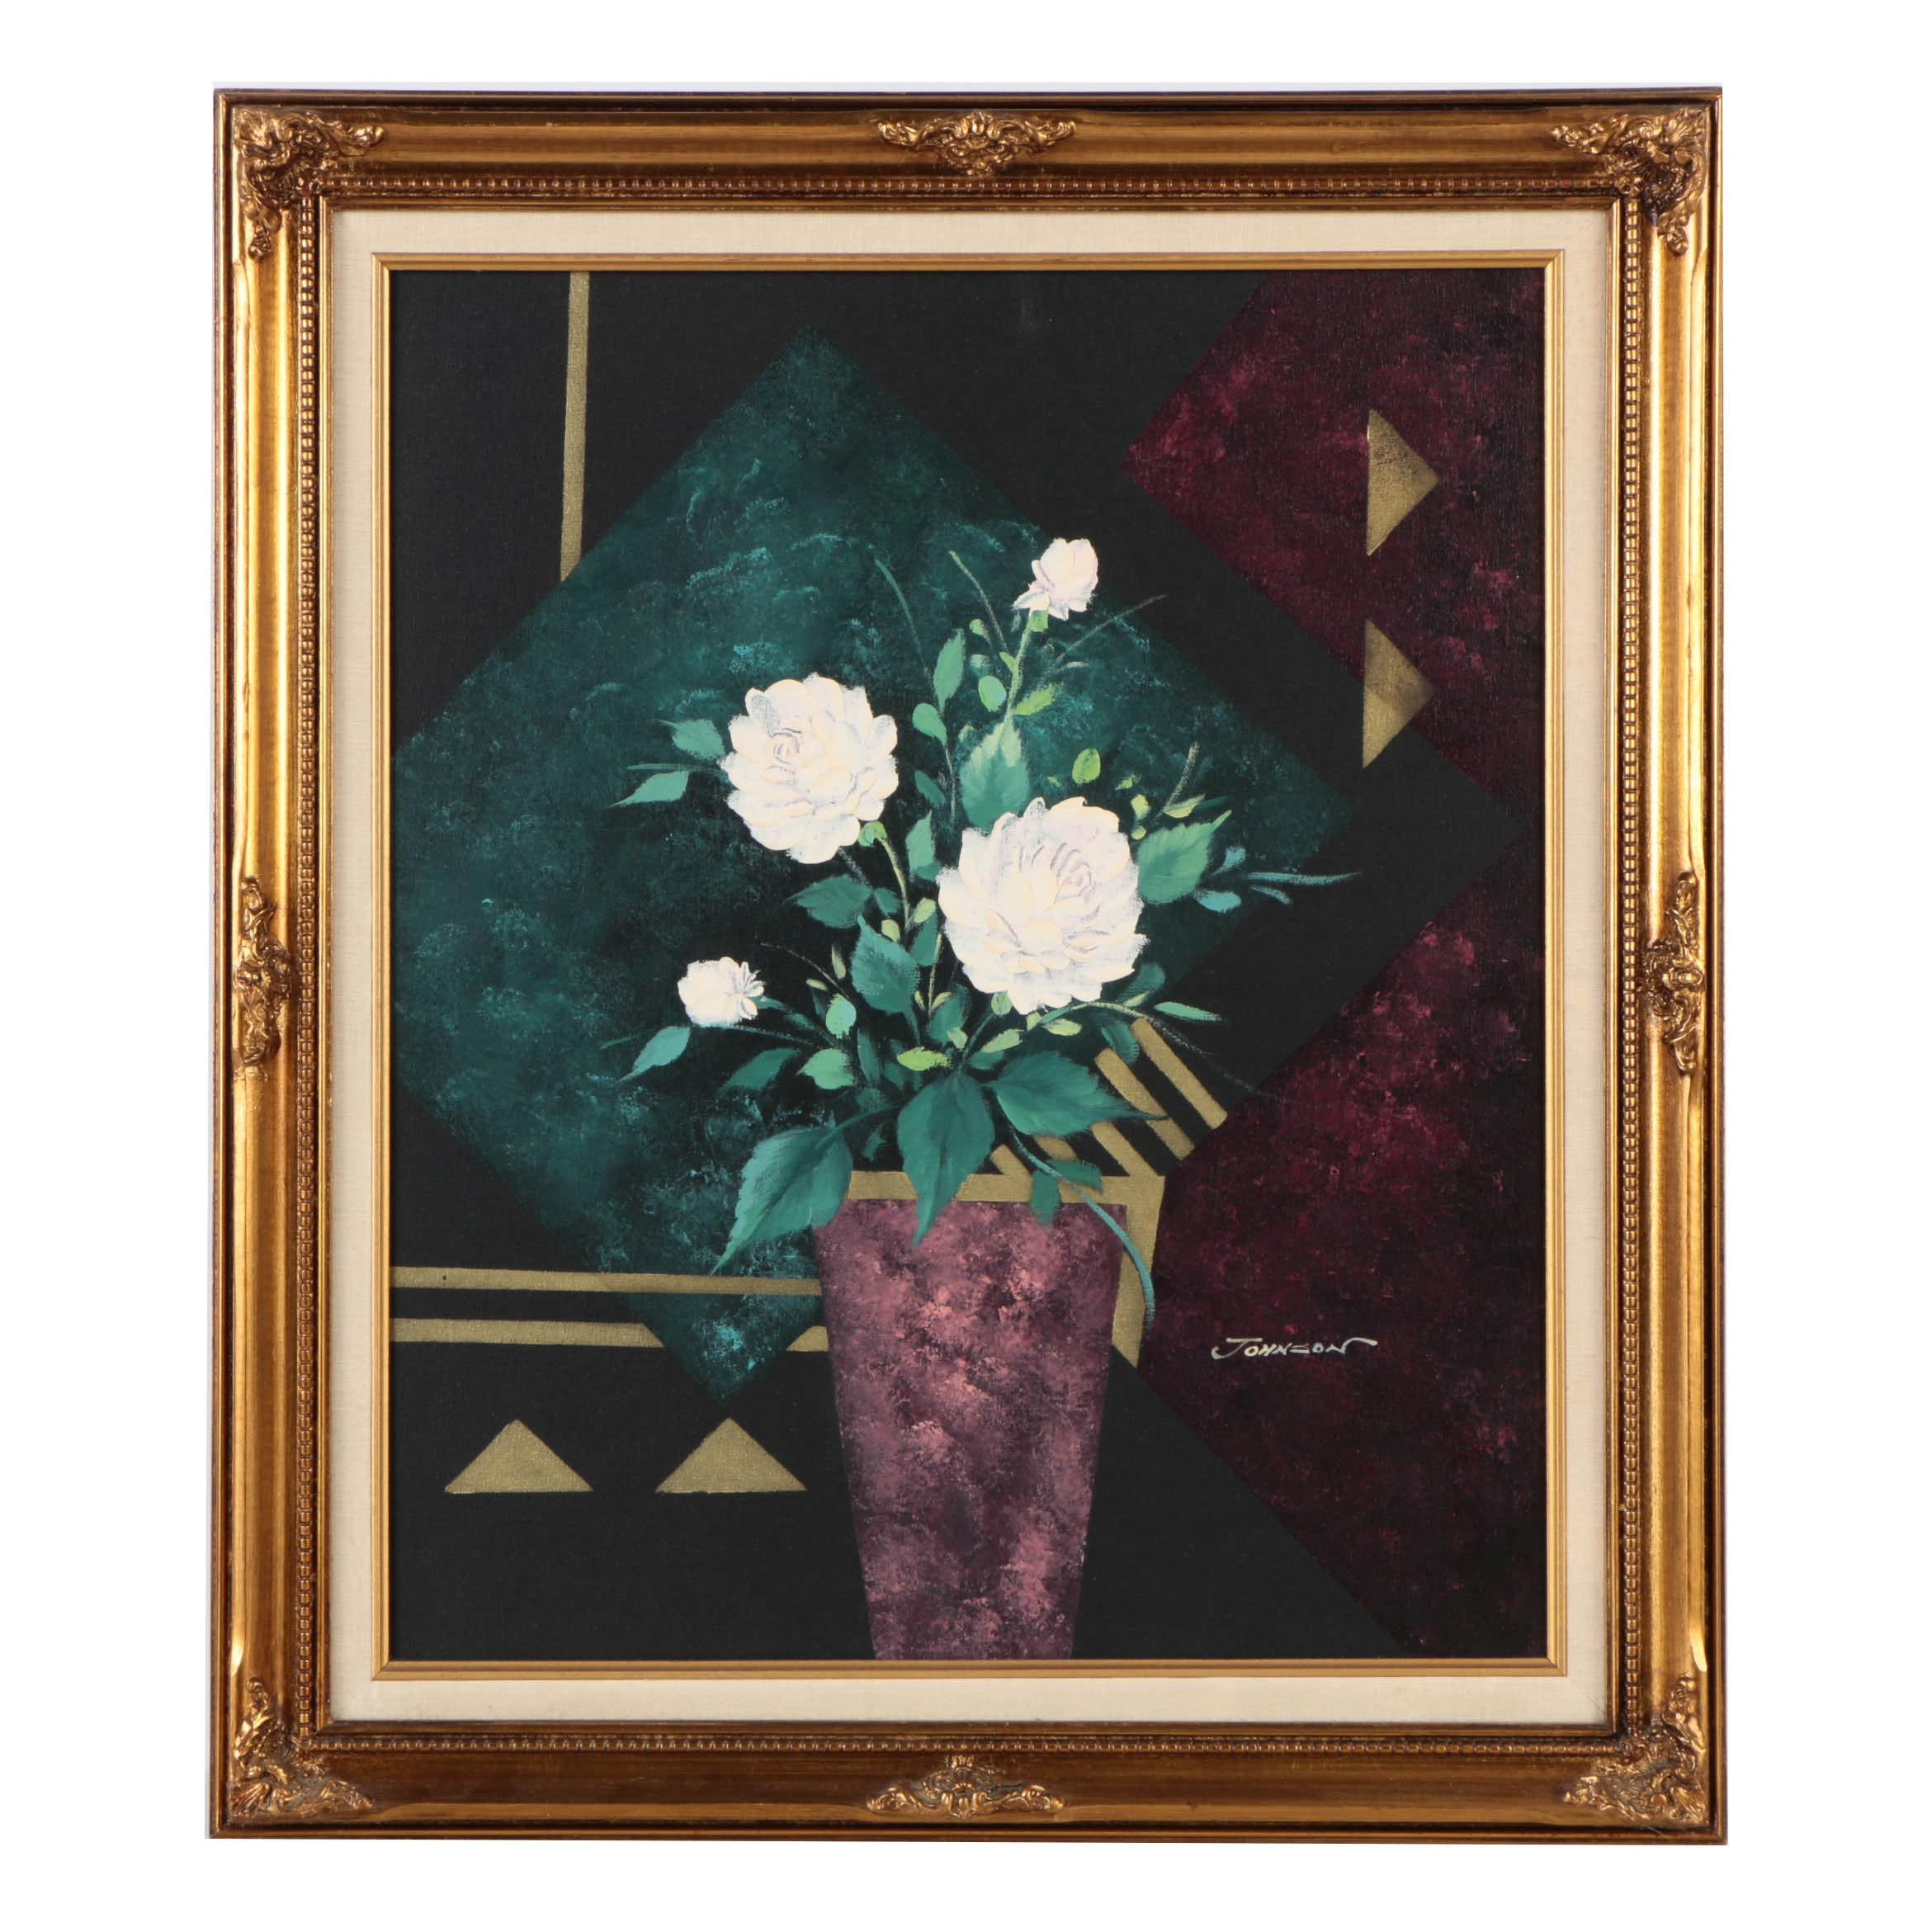 Johnson Acrylic Painting of Floral Still Life